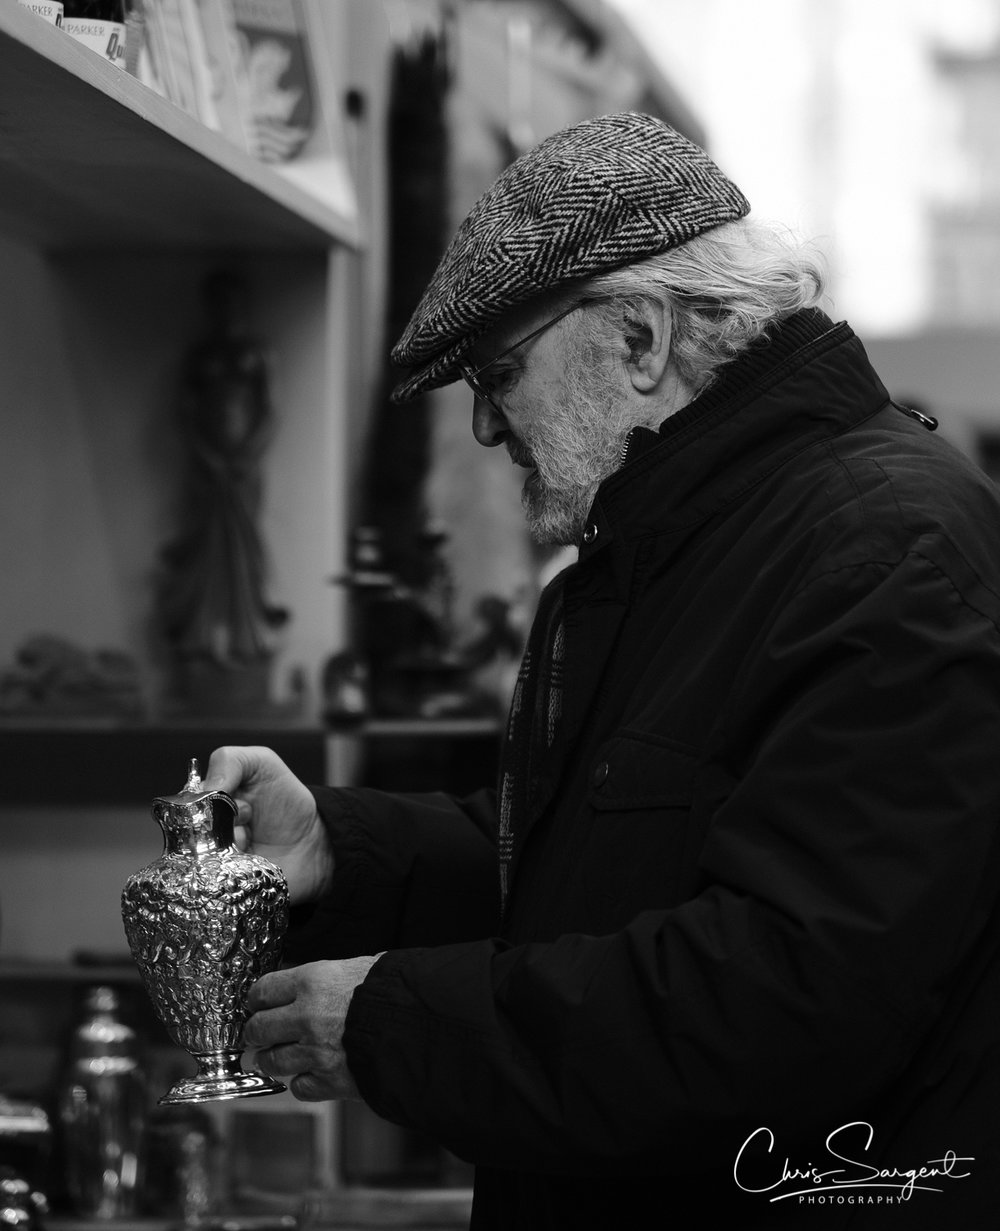 Fuji X-T2 56mm - ACROS Film Simulation Spitalfields Market - 'Looking for a treasure'